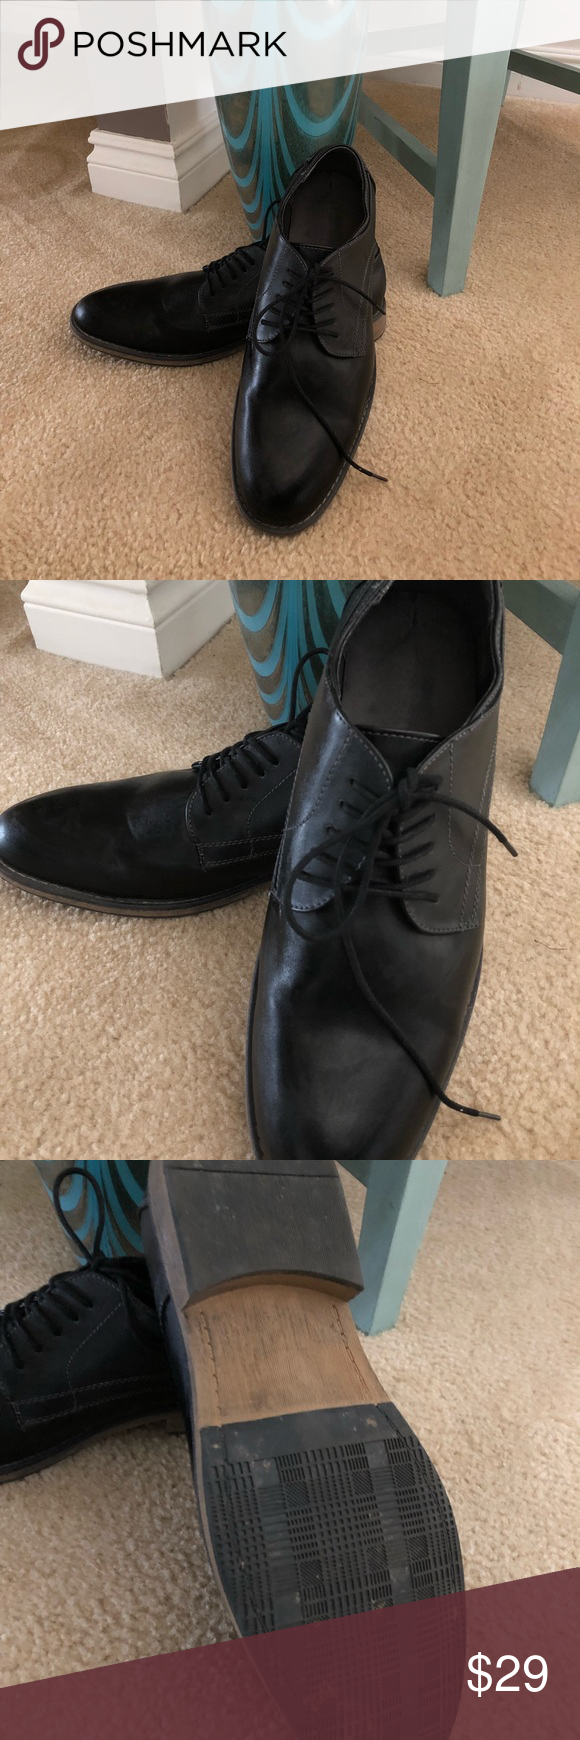 1aaa8e6e150f JcPenny black Dress shoes Men dress shoes worn 1X Black lace up jcpenney  Shoes Loafers   Slip-Ons